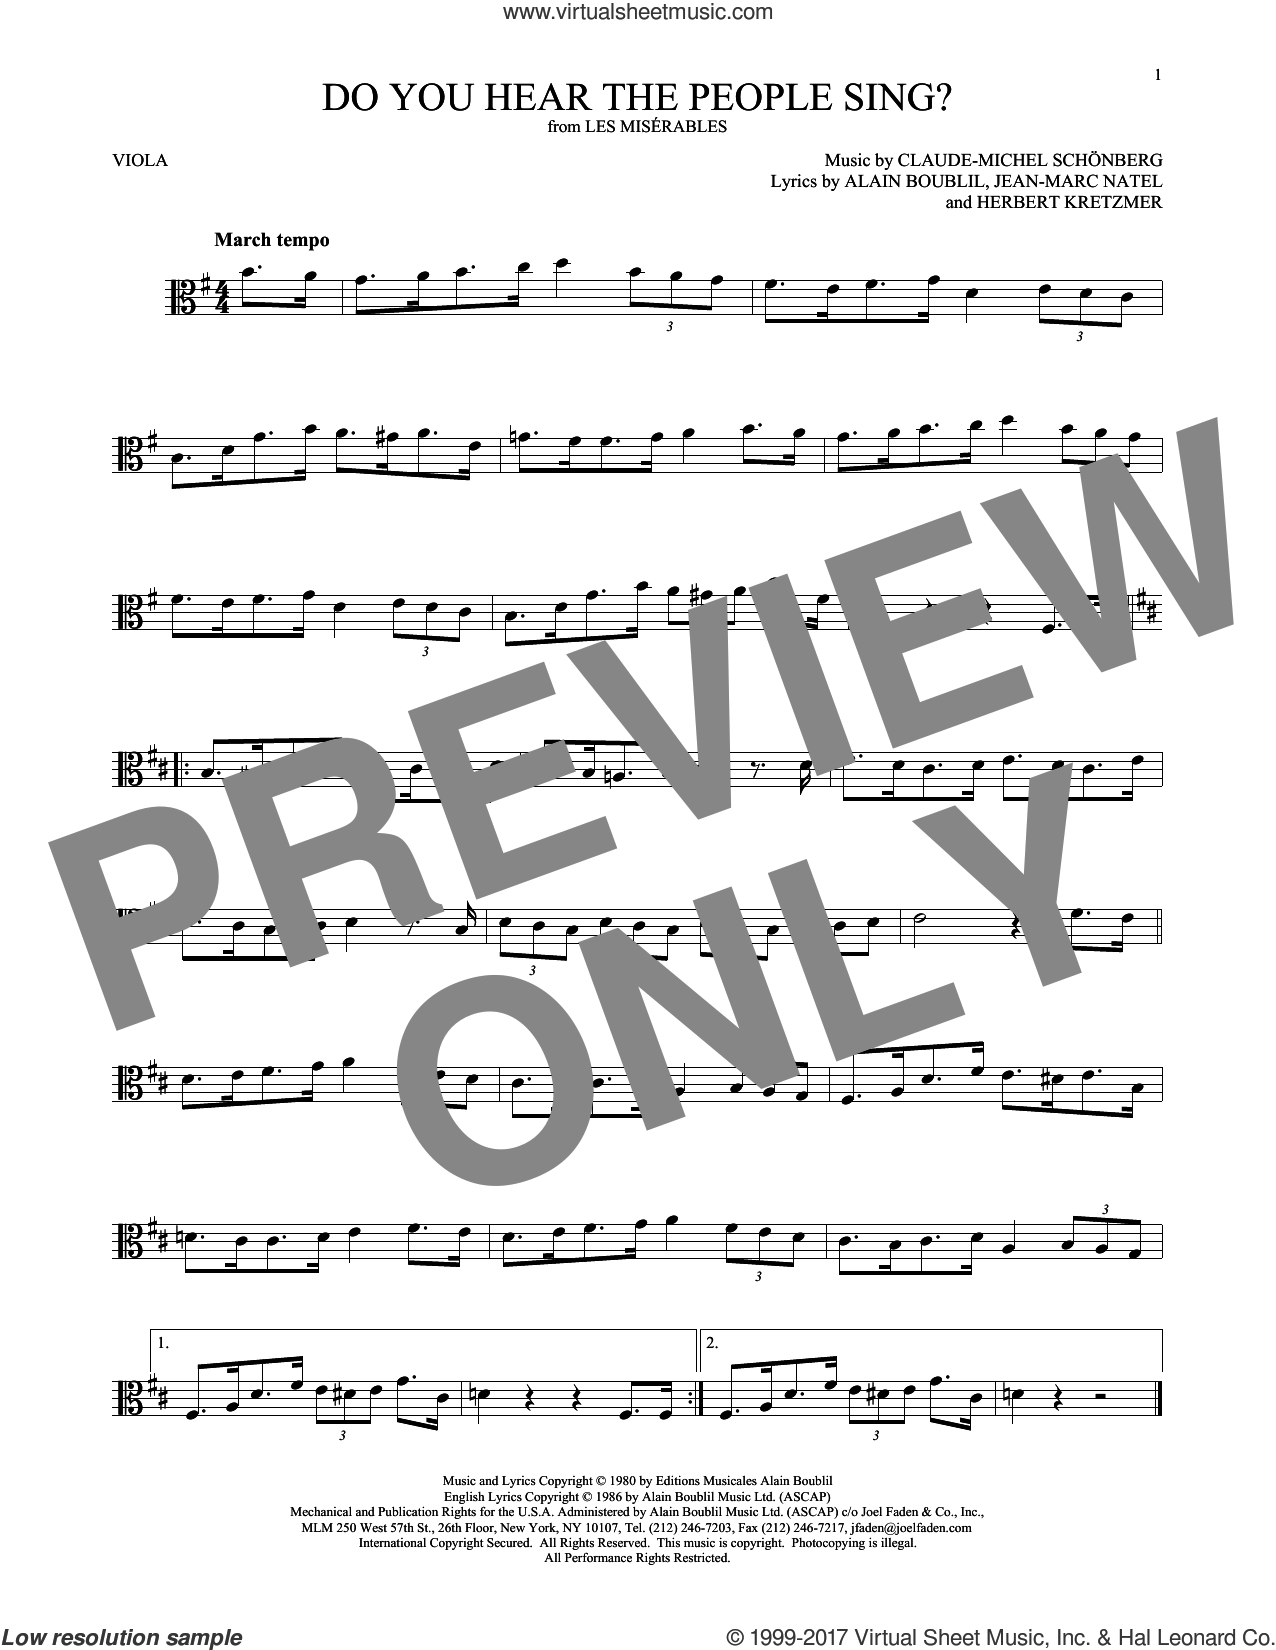 Do You Hear The People Sing? sheet music for viola solo by Alain Boublil, Claude-Michel Schonberg, Herbert Kretzmer and Jean-Marc Natel, intermediate skill level